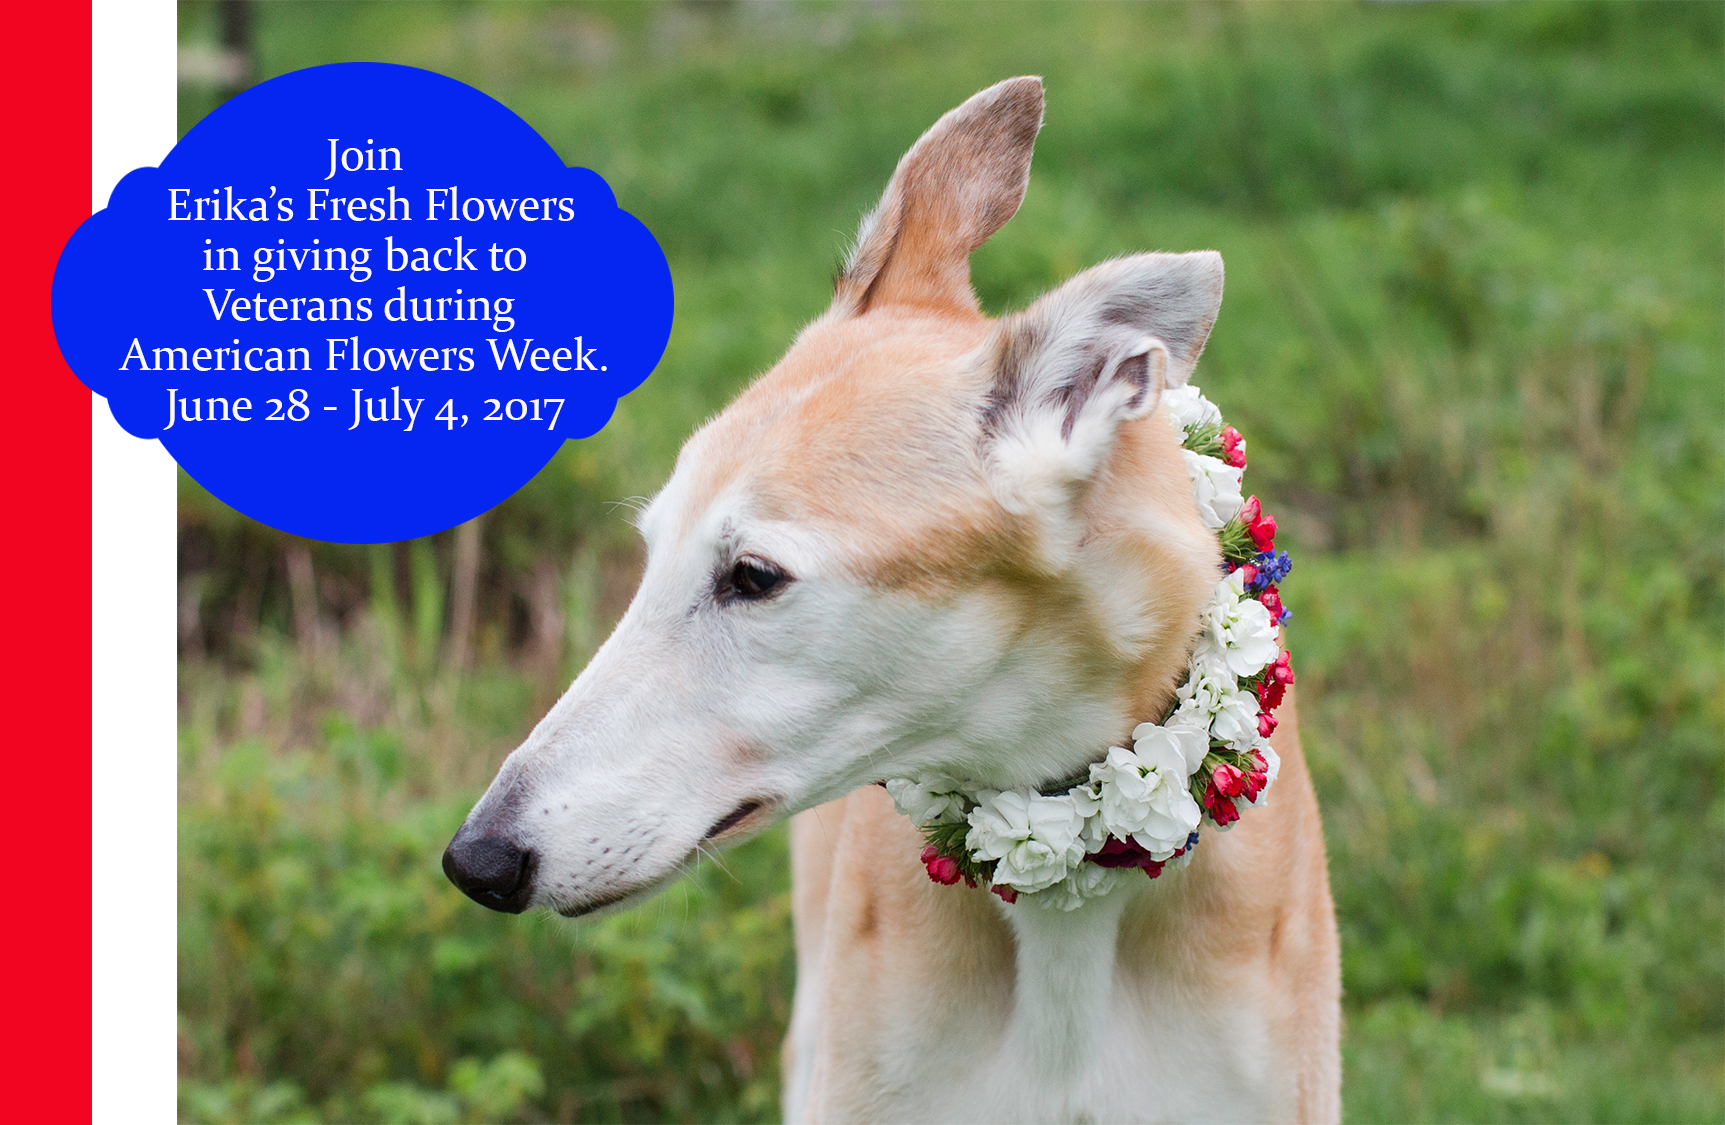 AMERICAN FLOWERS WEEK Promotion Idea